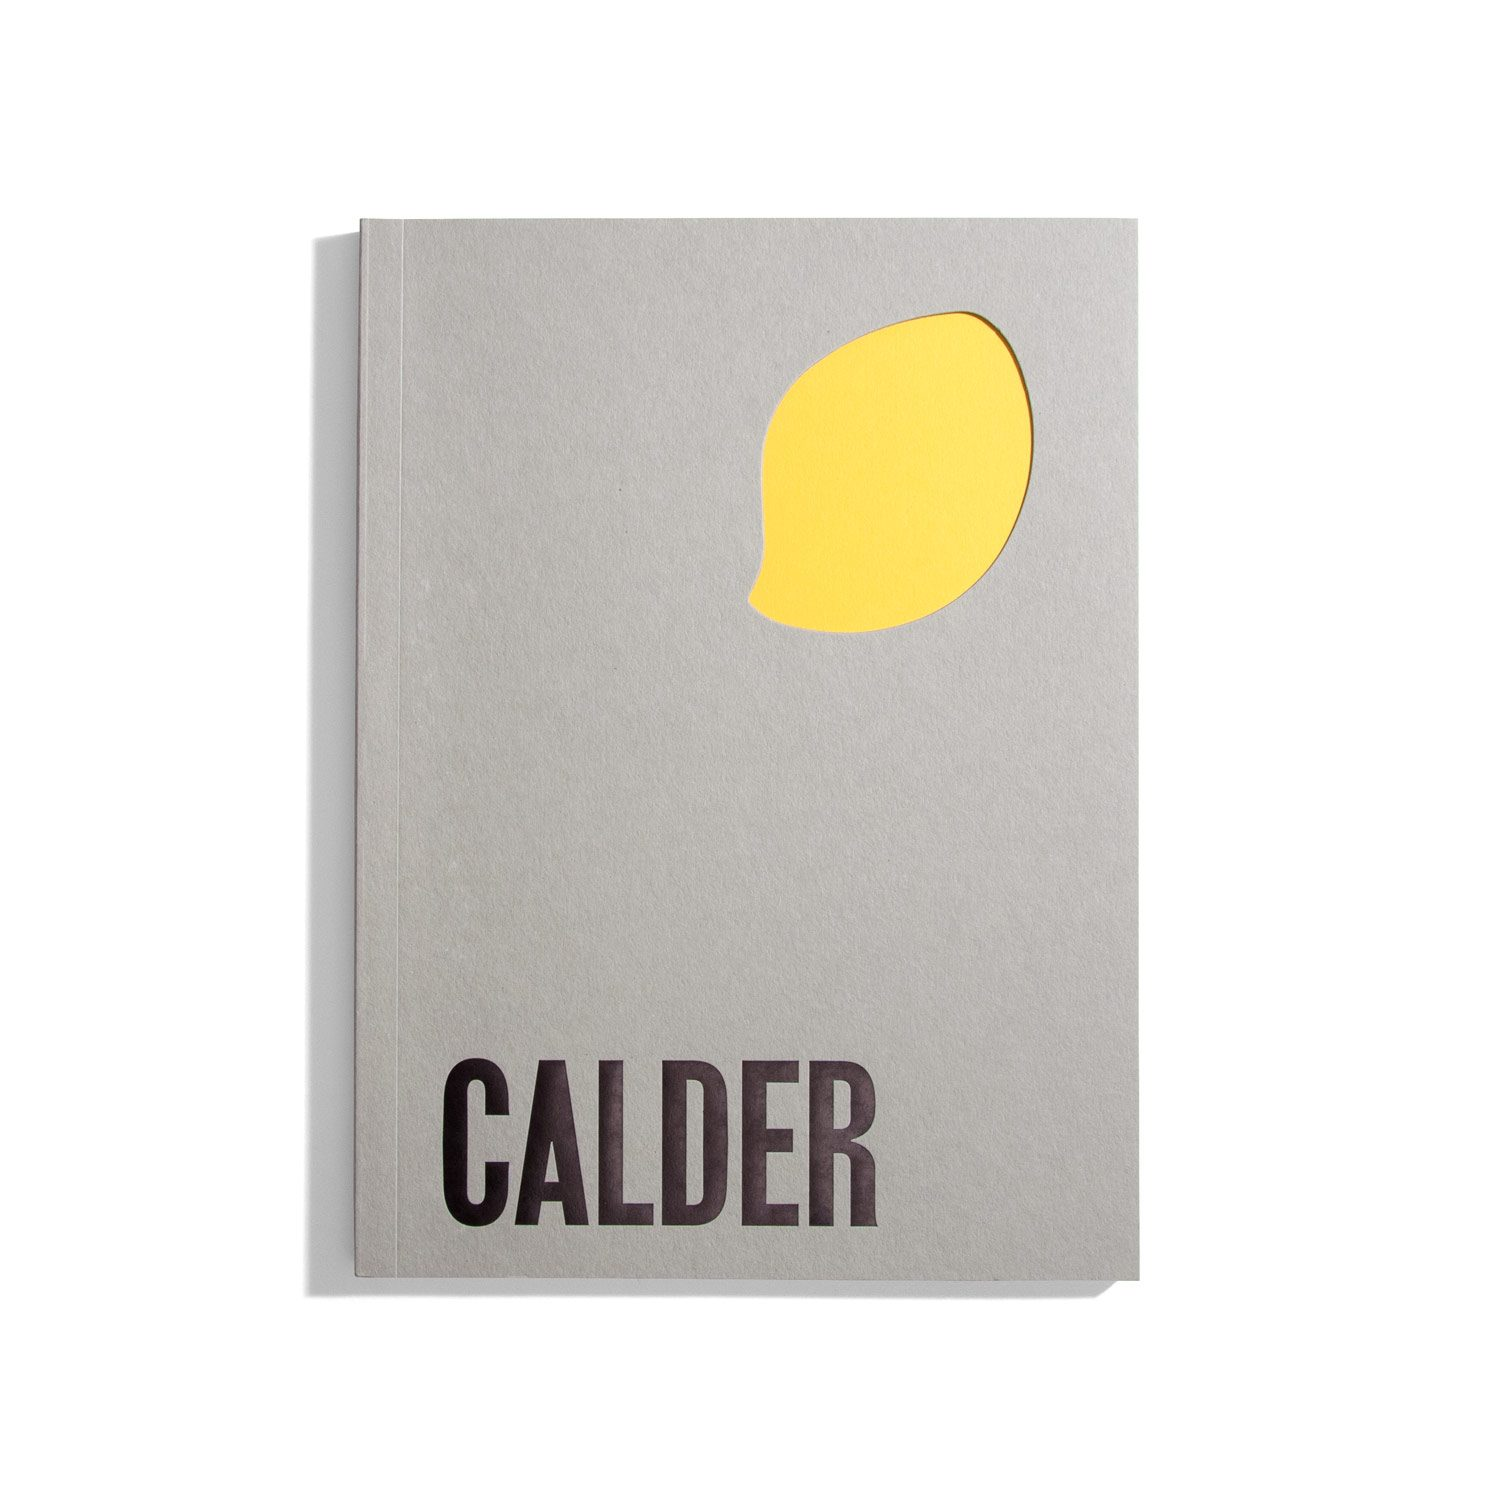 From The Stony River To The Sky - Alexander Calder